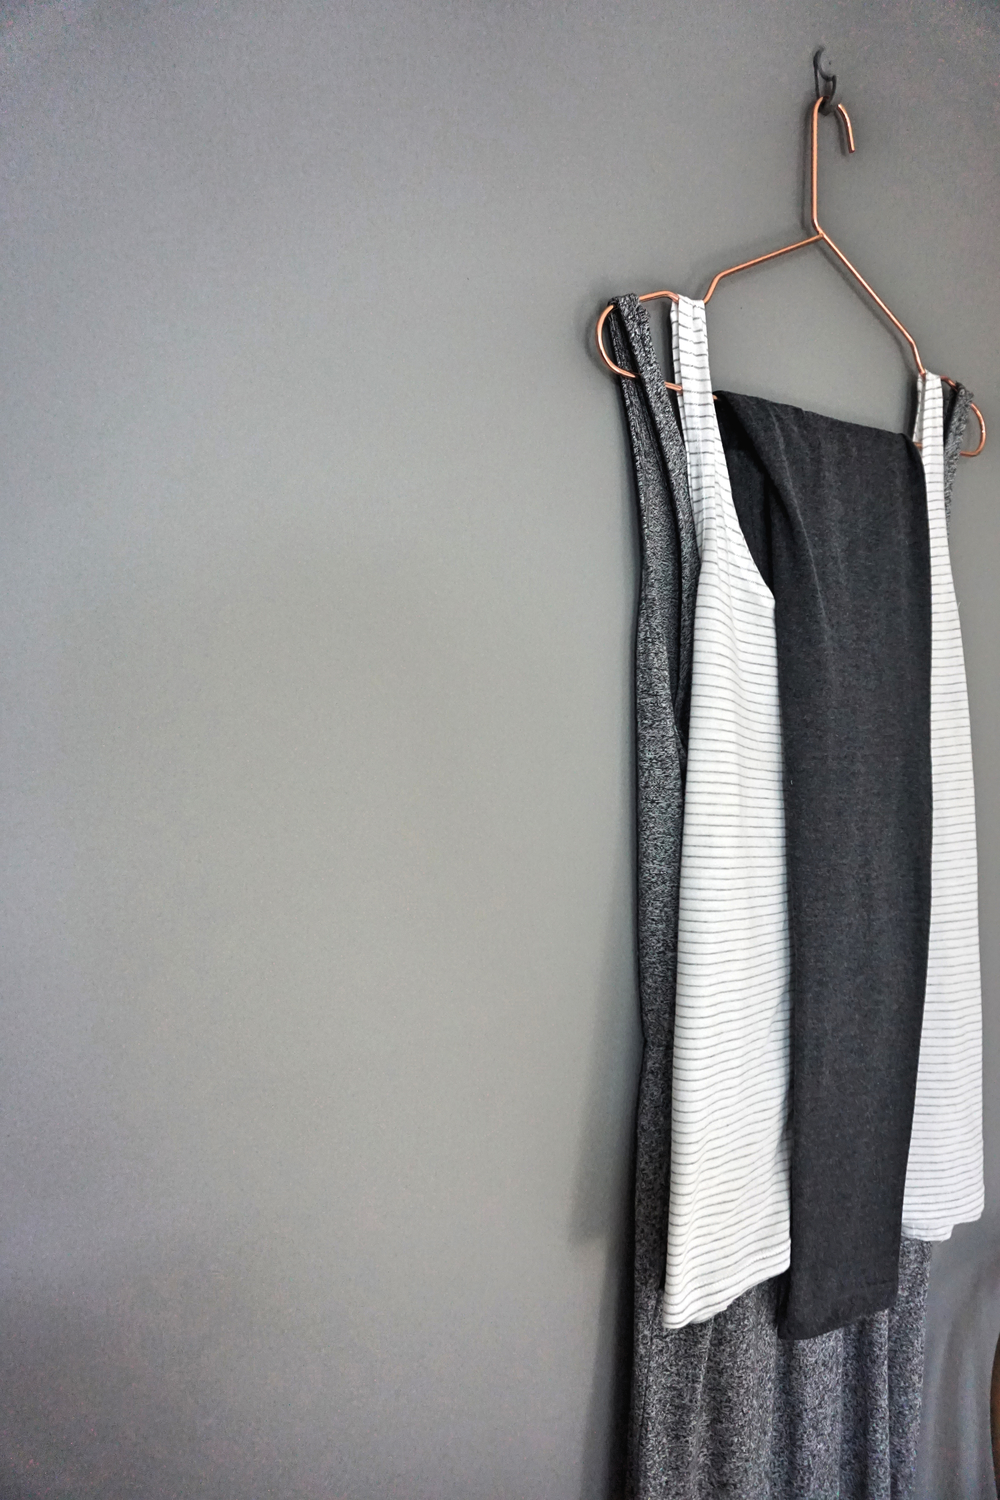 1. Marl Grey Jersey Jumpsuit. 2. Pencil Stripe Cotton Vest. 3. Charcoal Leggings all H&M.